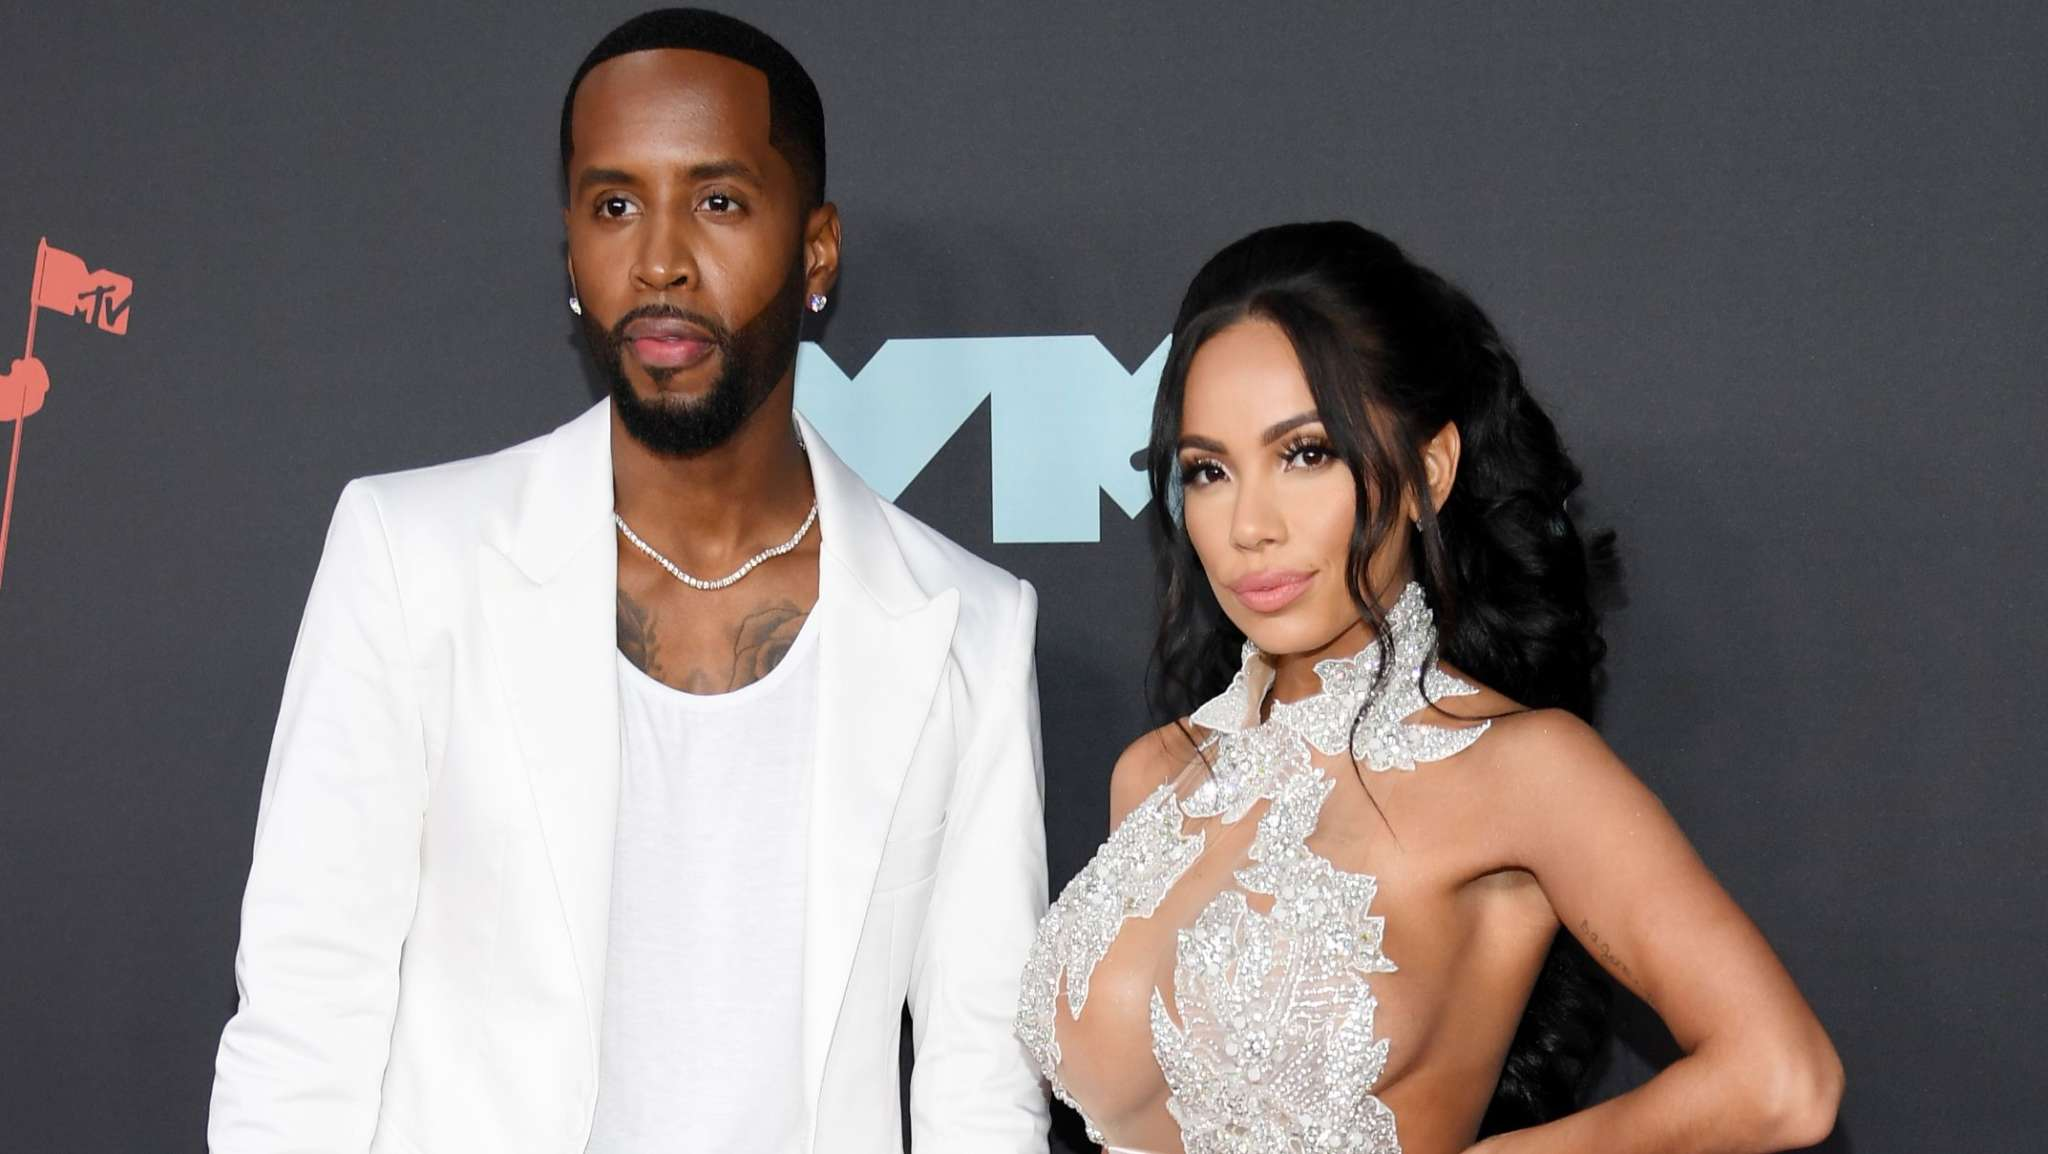 Erica Mena Is A Married Woman - See The Video In Which She Flaunts The Wedding Bands - Fans Are Sad Due To The Lack Of Pics From The Event